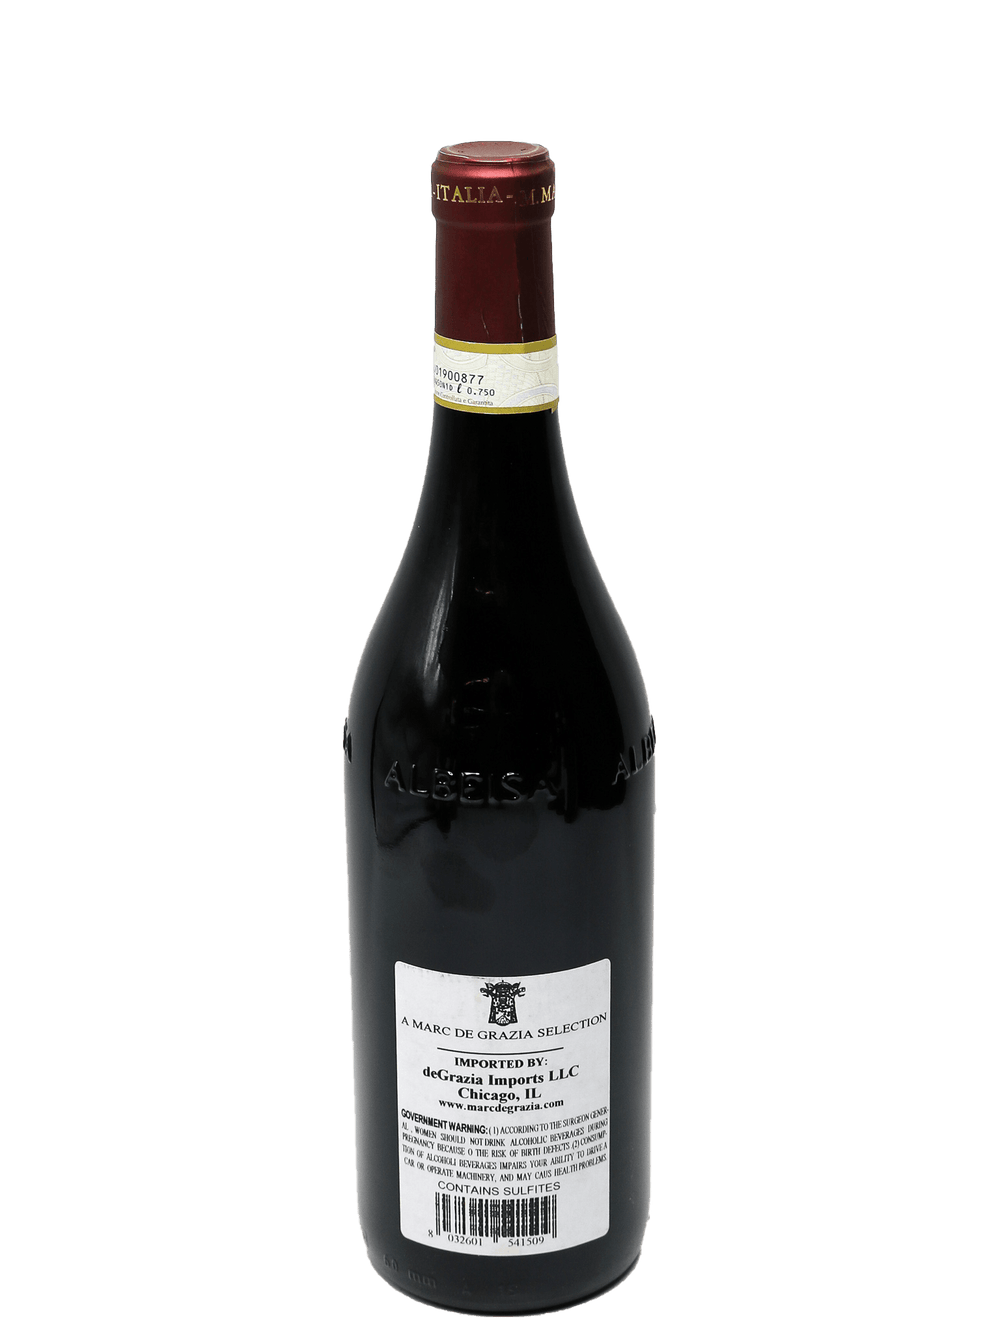 2016 Marengo Barolo Brunate